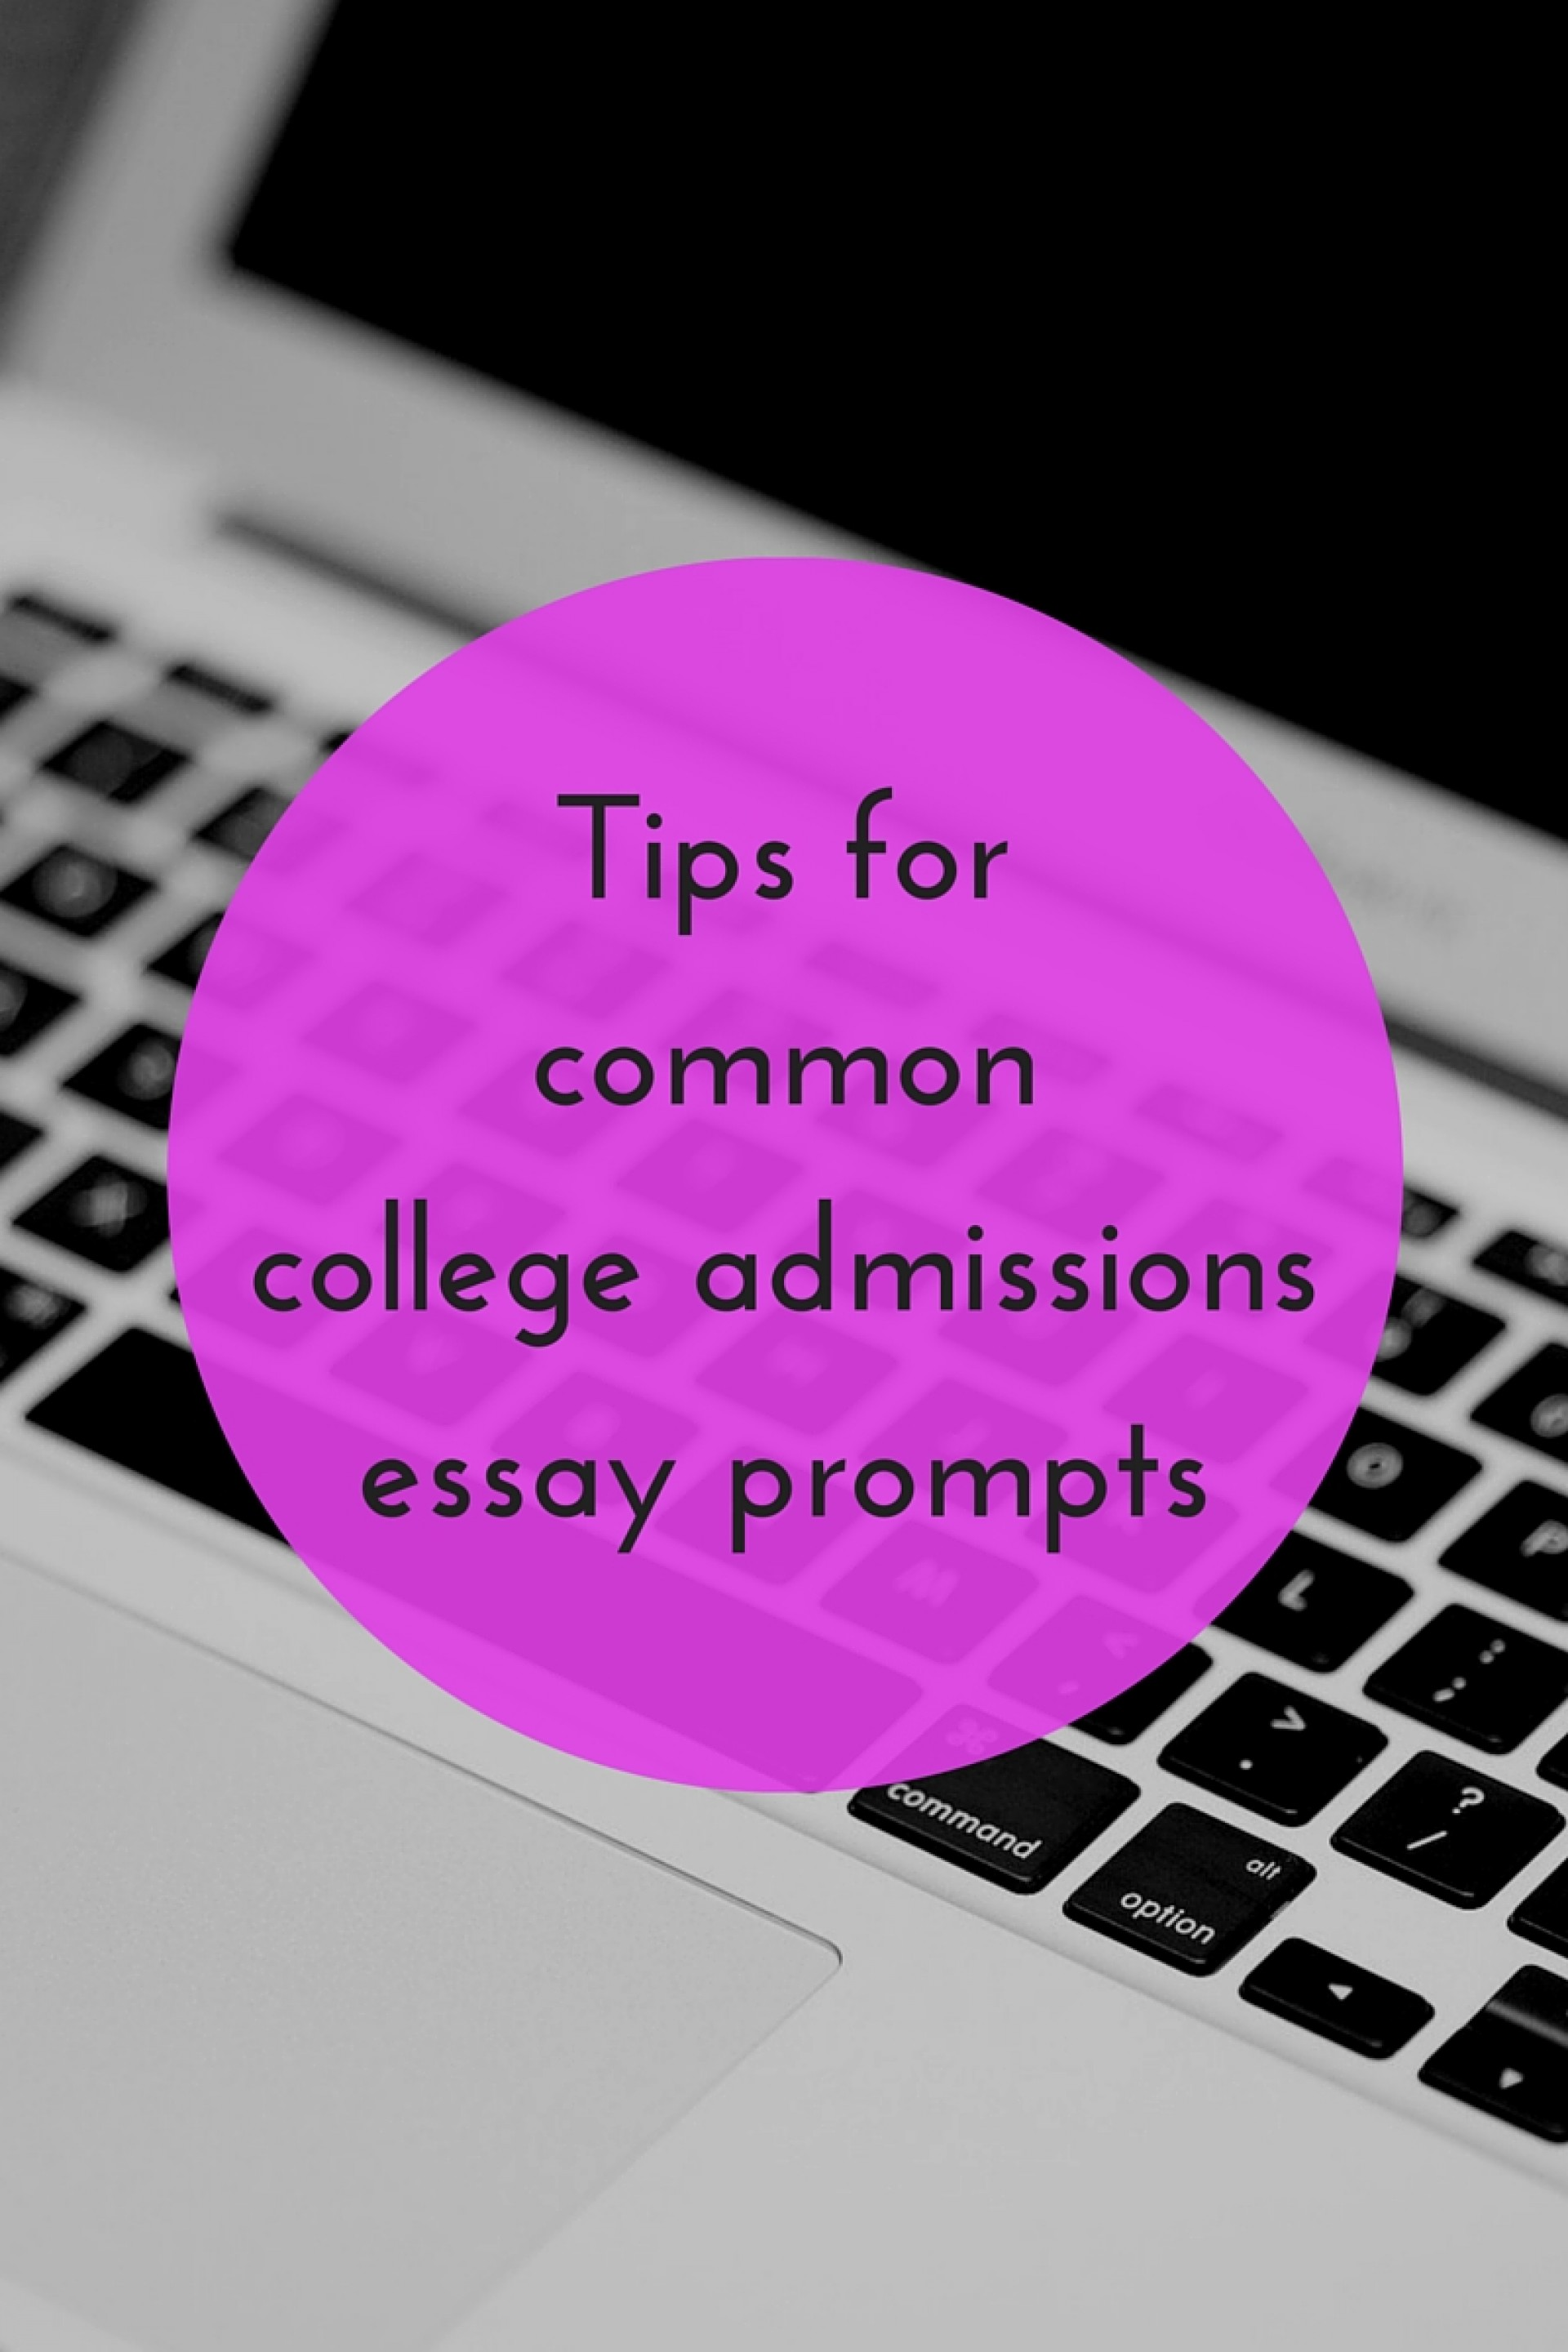 016 Essay Example College Prompts Tips For Common Shocking 2015 Admission 1920